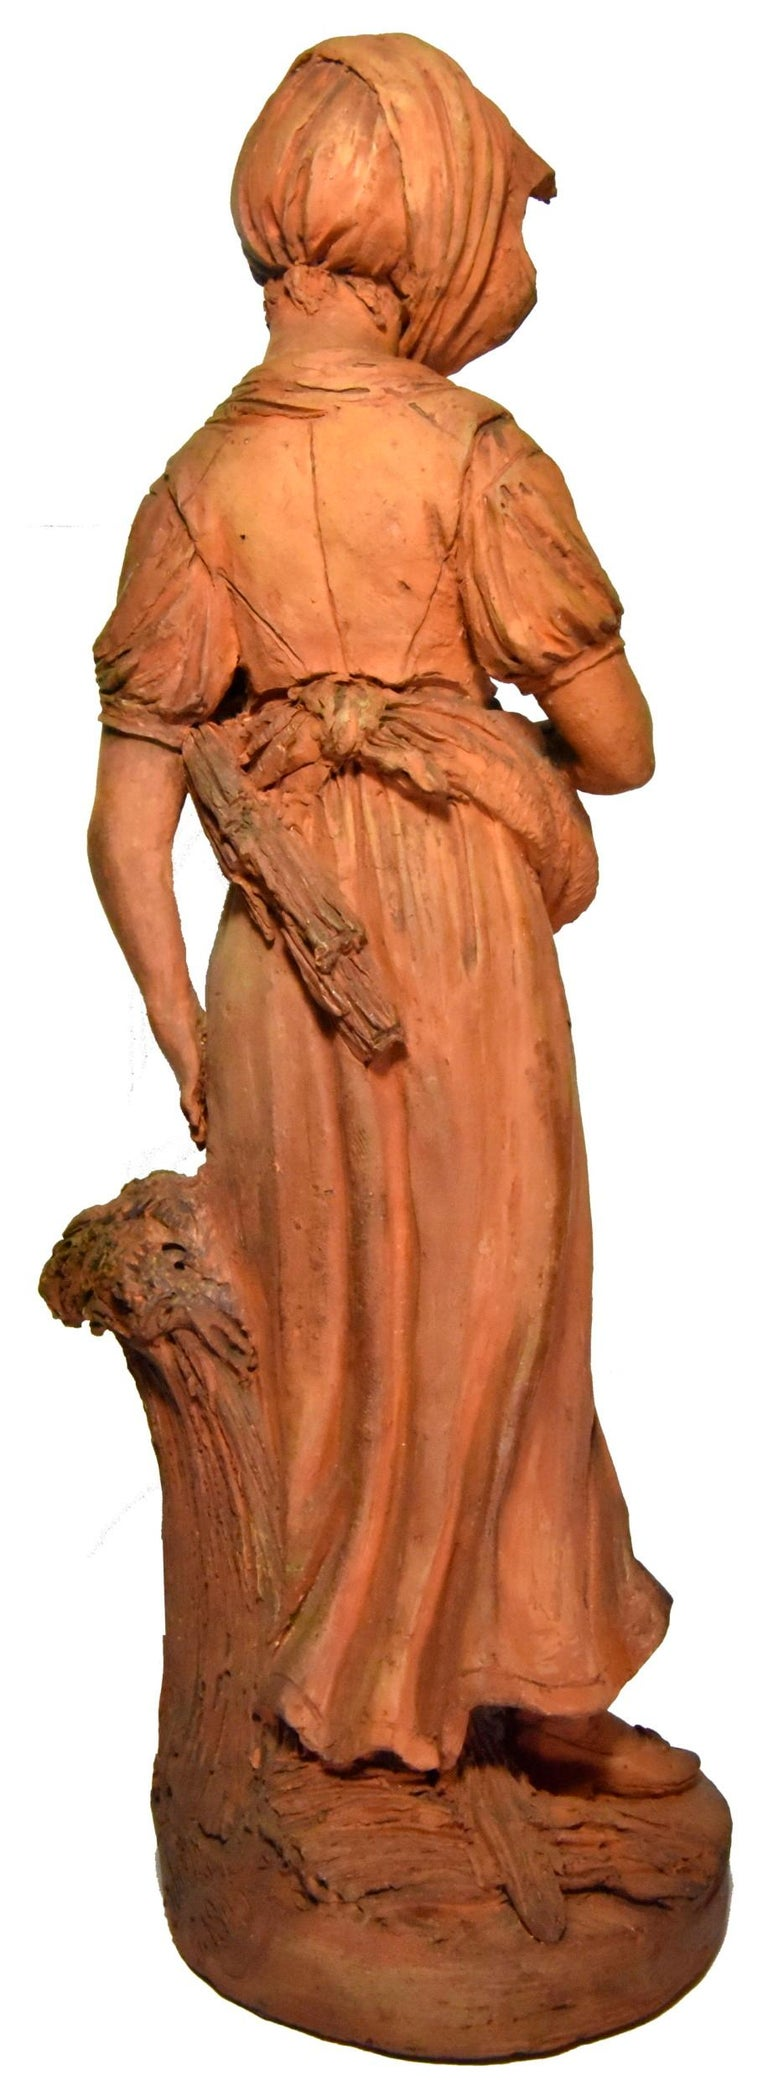 Couple of peasants - original terracotta figures by Louis Delaville, 1805 - Brown Figurative Sculpture by DELAVILLE Louis